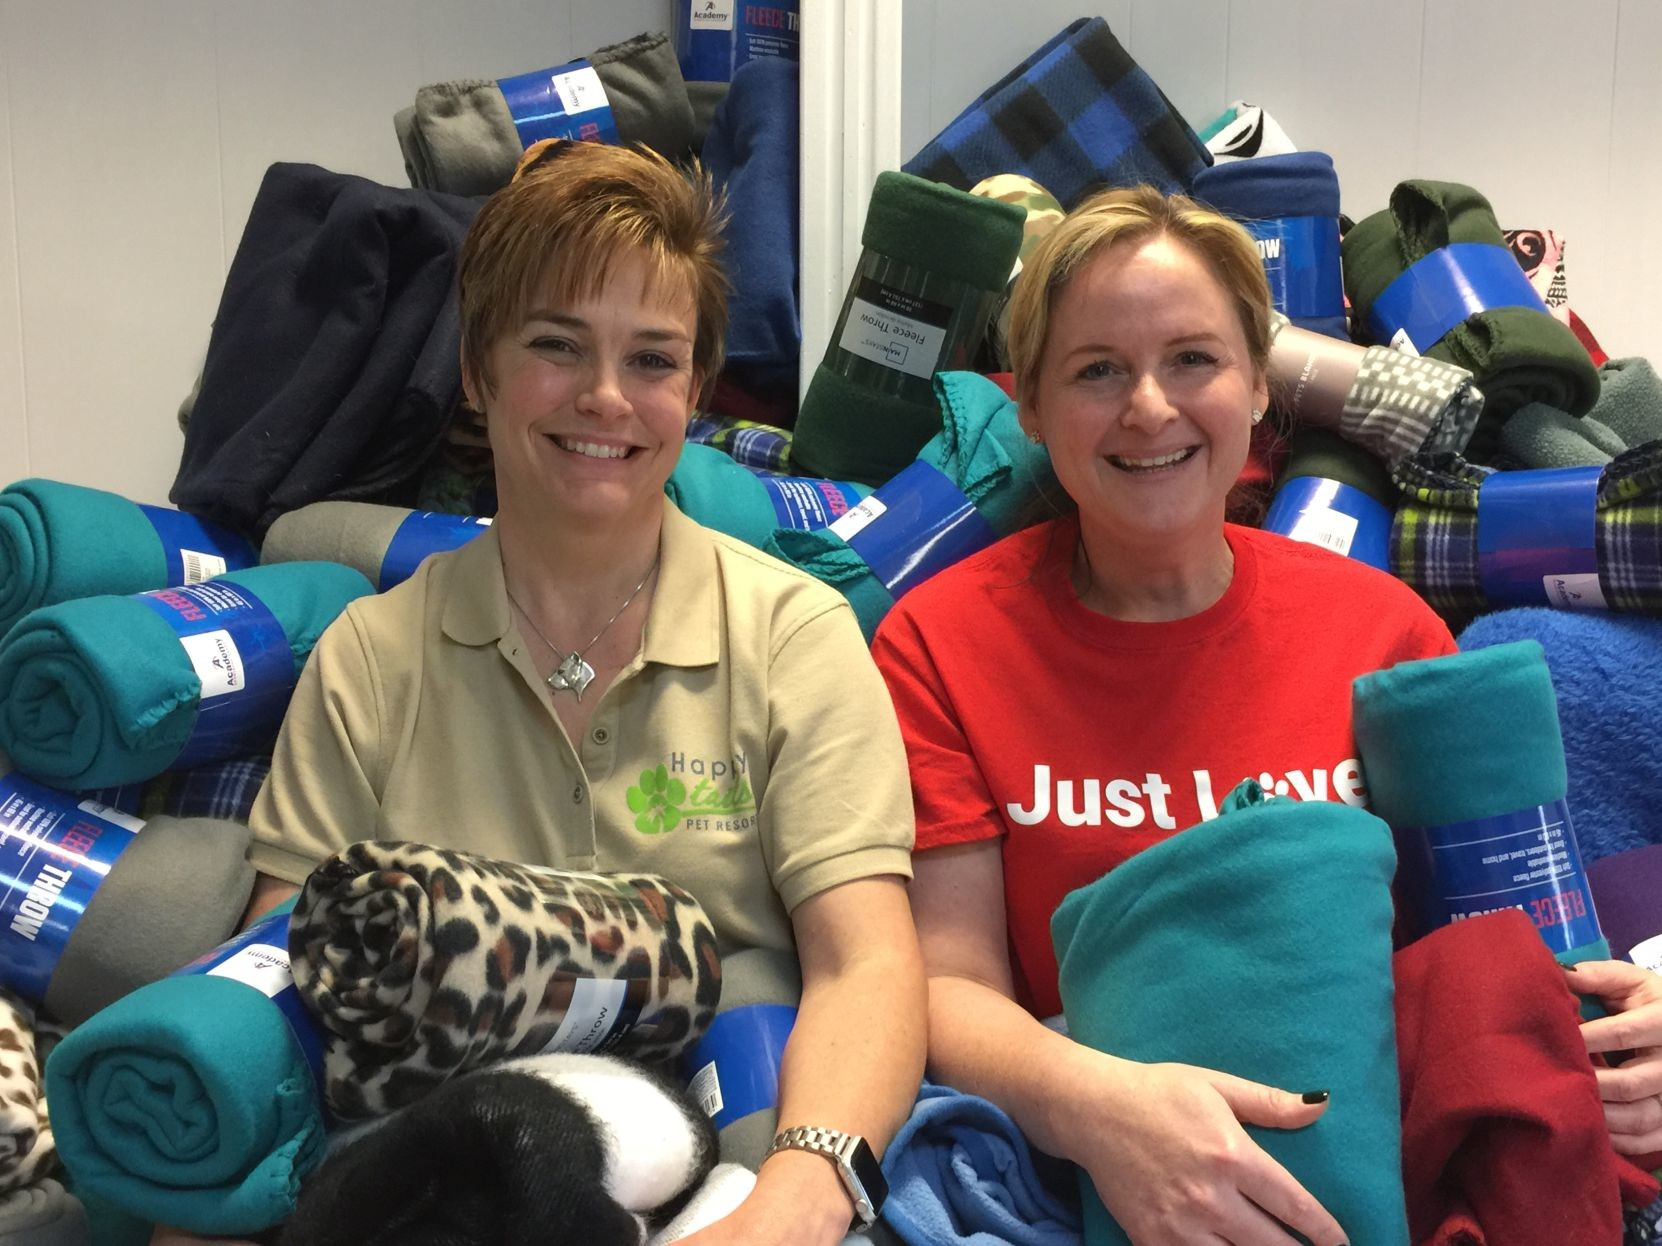 Brenda Tatro (left), owner of Happy Tails Pet Resort, and Kristen Huguley, executive director of Texas Humane Heroes, surrounded by mounds of donated blankets for homeless pets.